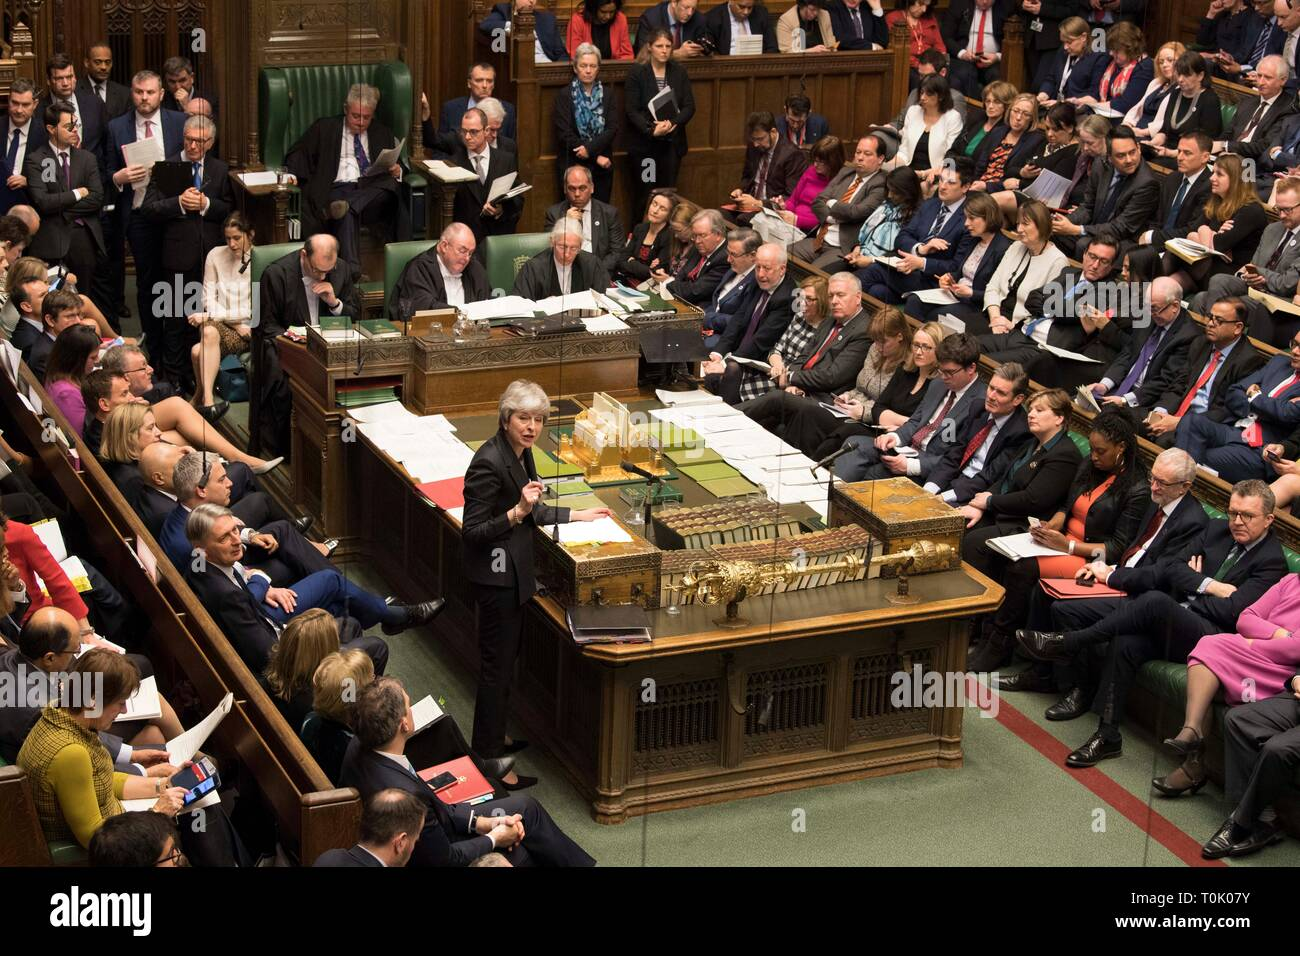 Beijing, Britain. 20th Mar, 2019. British Prime Minister Theresa May (C) speaks during the Prime Minister's Question Time in the House of Commons in London, Britain, on March 20, 2019. Theresa May confirmed Wednesday she has written to the European Union seeking to delay Britain's departure from the bloc until June 30. Credit: UK Parliament/Mark Duffy/Xinhua/Alamy Live News - Stock Image